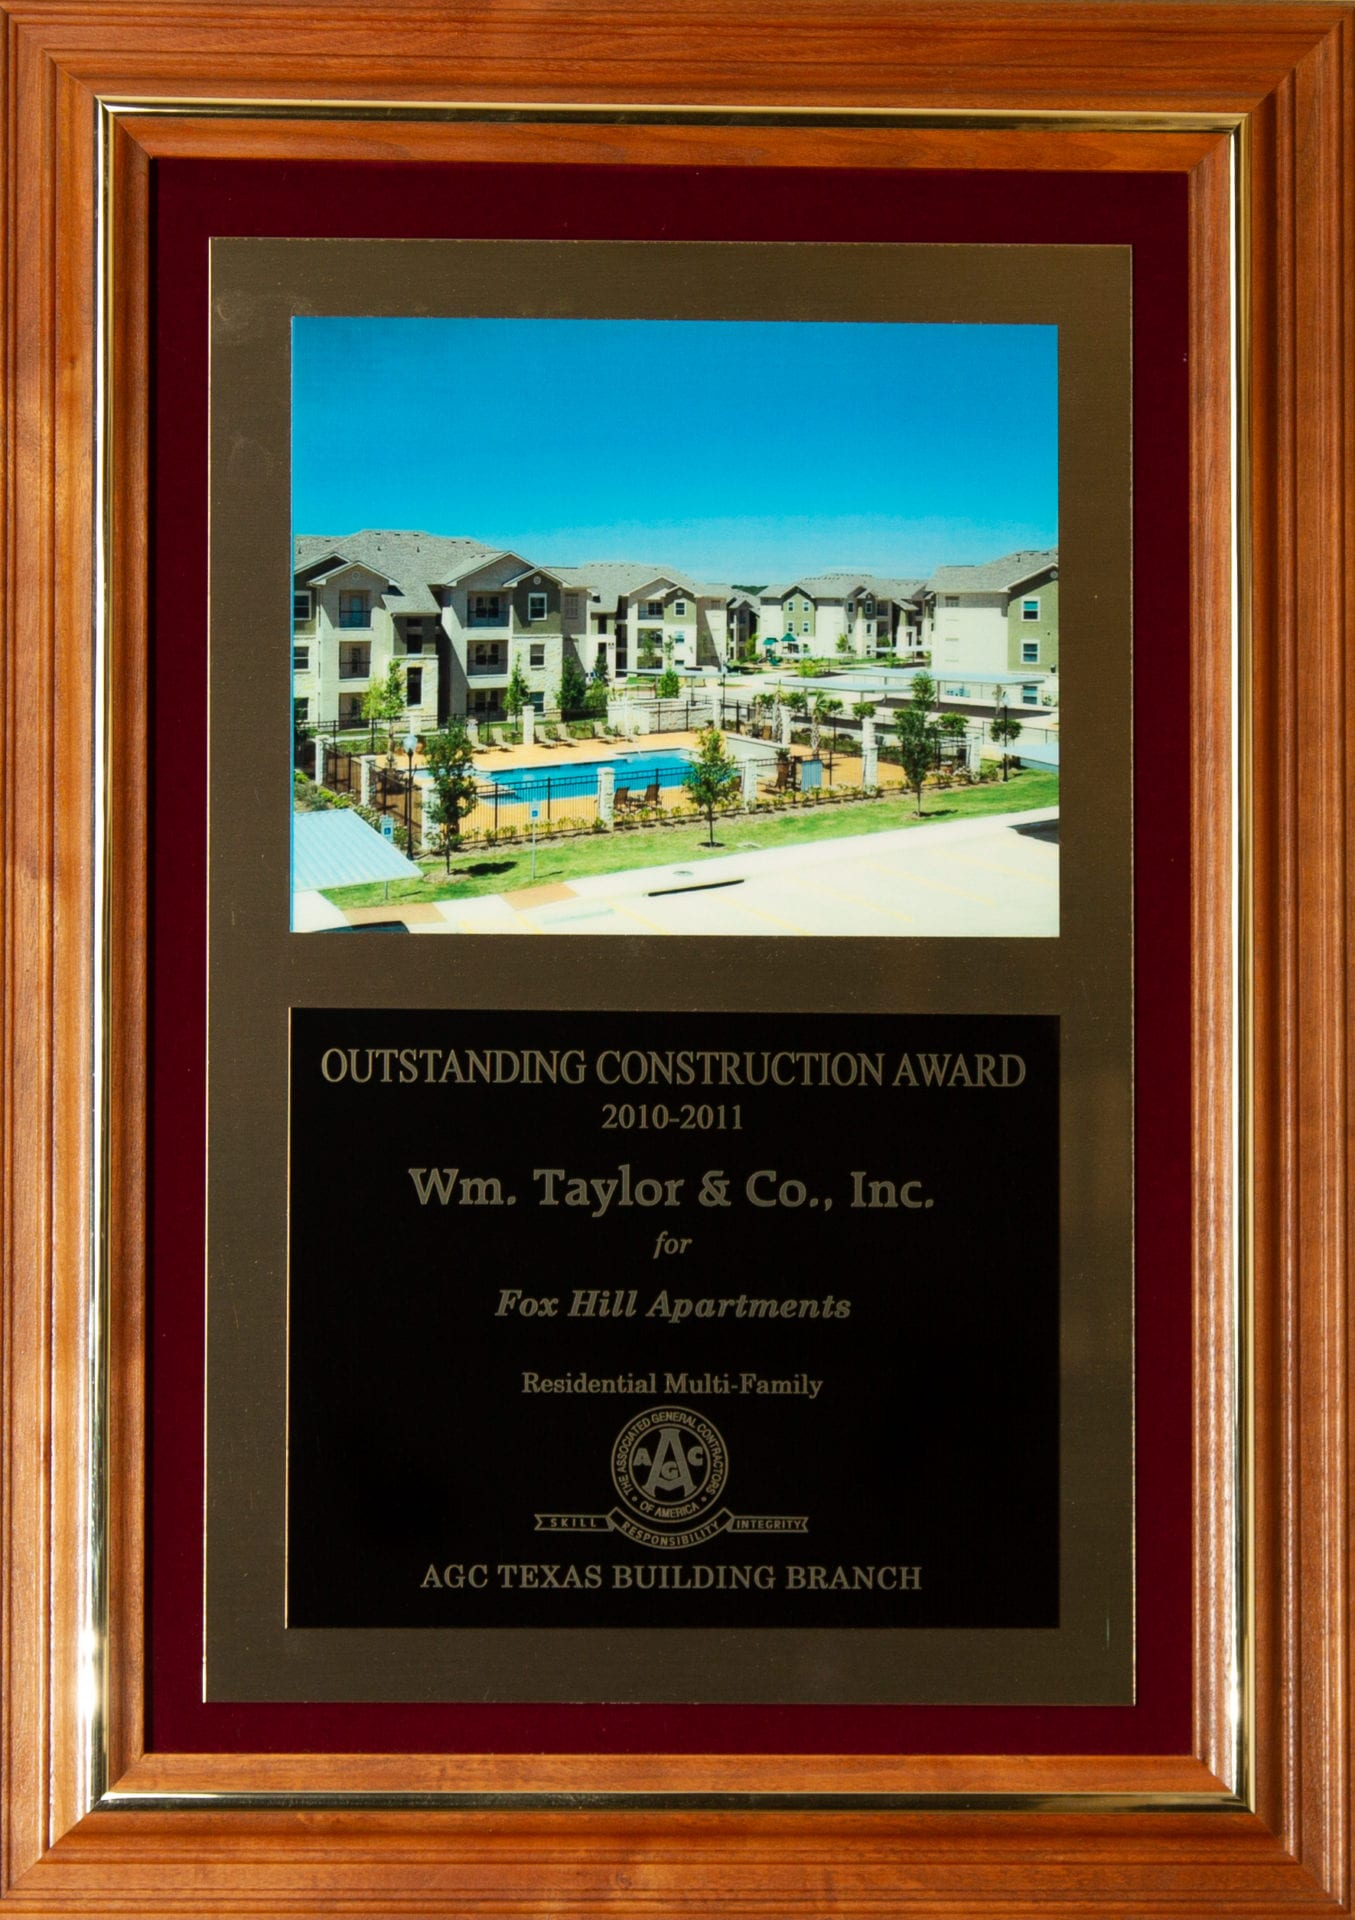 Wm. Taylor & Co. General Contractors - Outstanding Construction Award 2010-2011